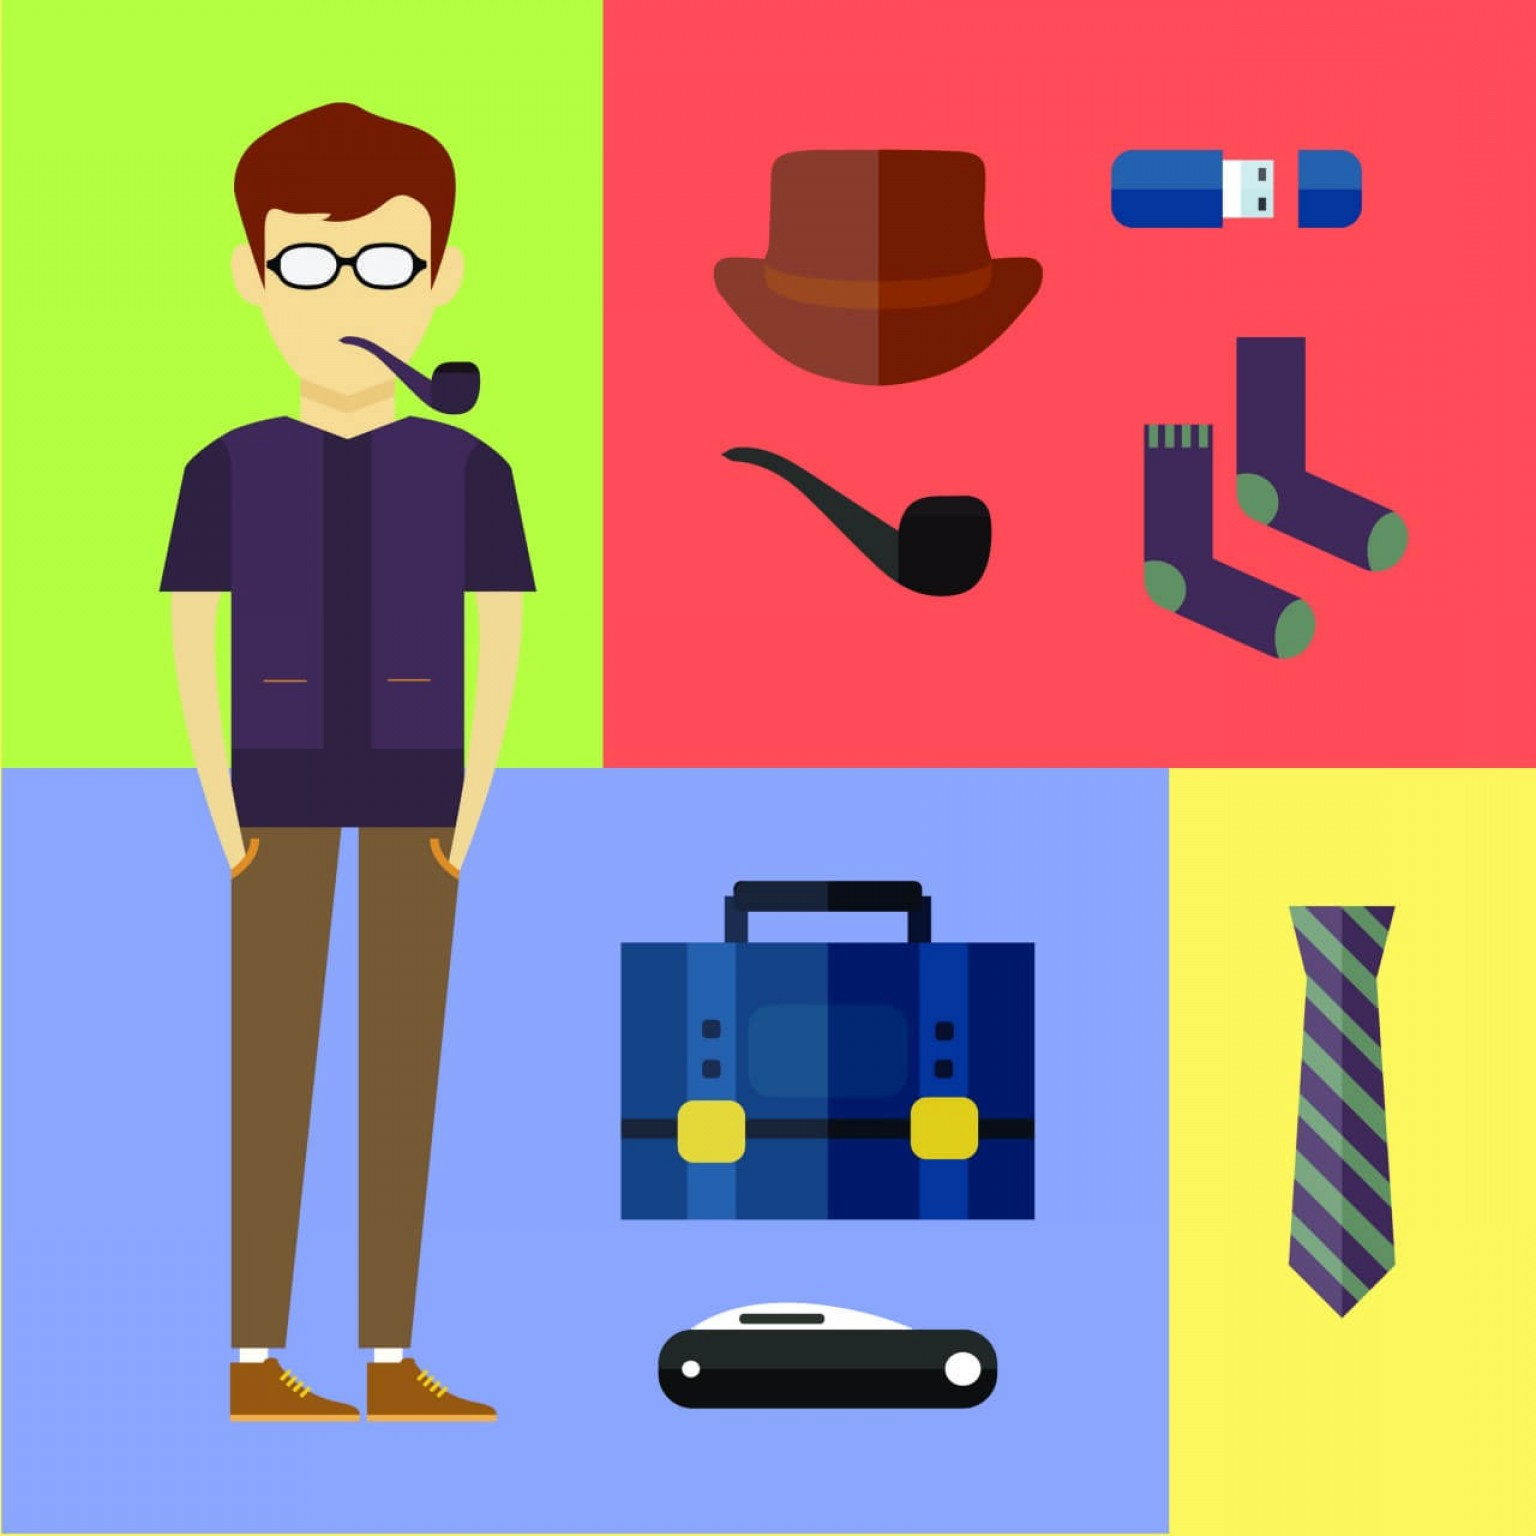 Vector People Free Clip Art: People Vector Hipster Character With Tools And Objects Free Illustration For Design